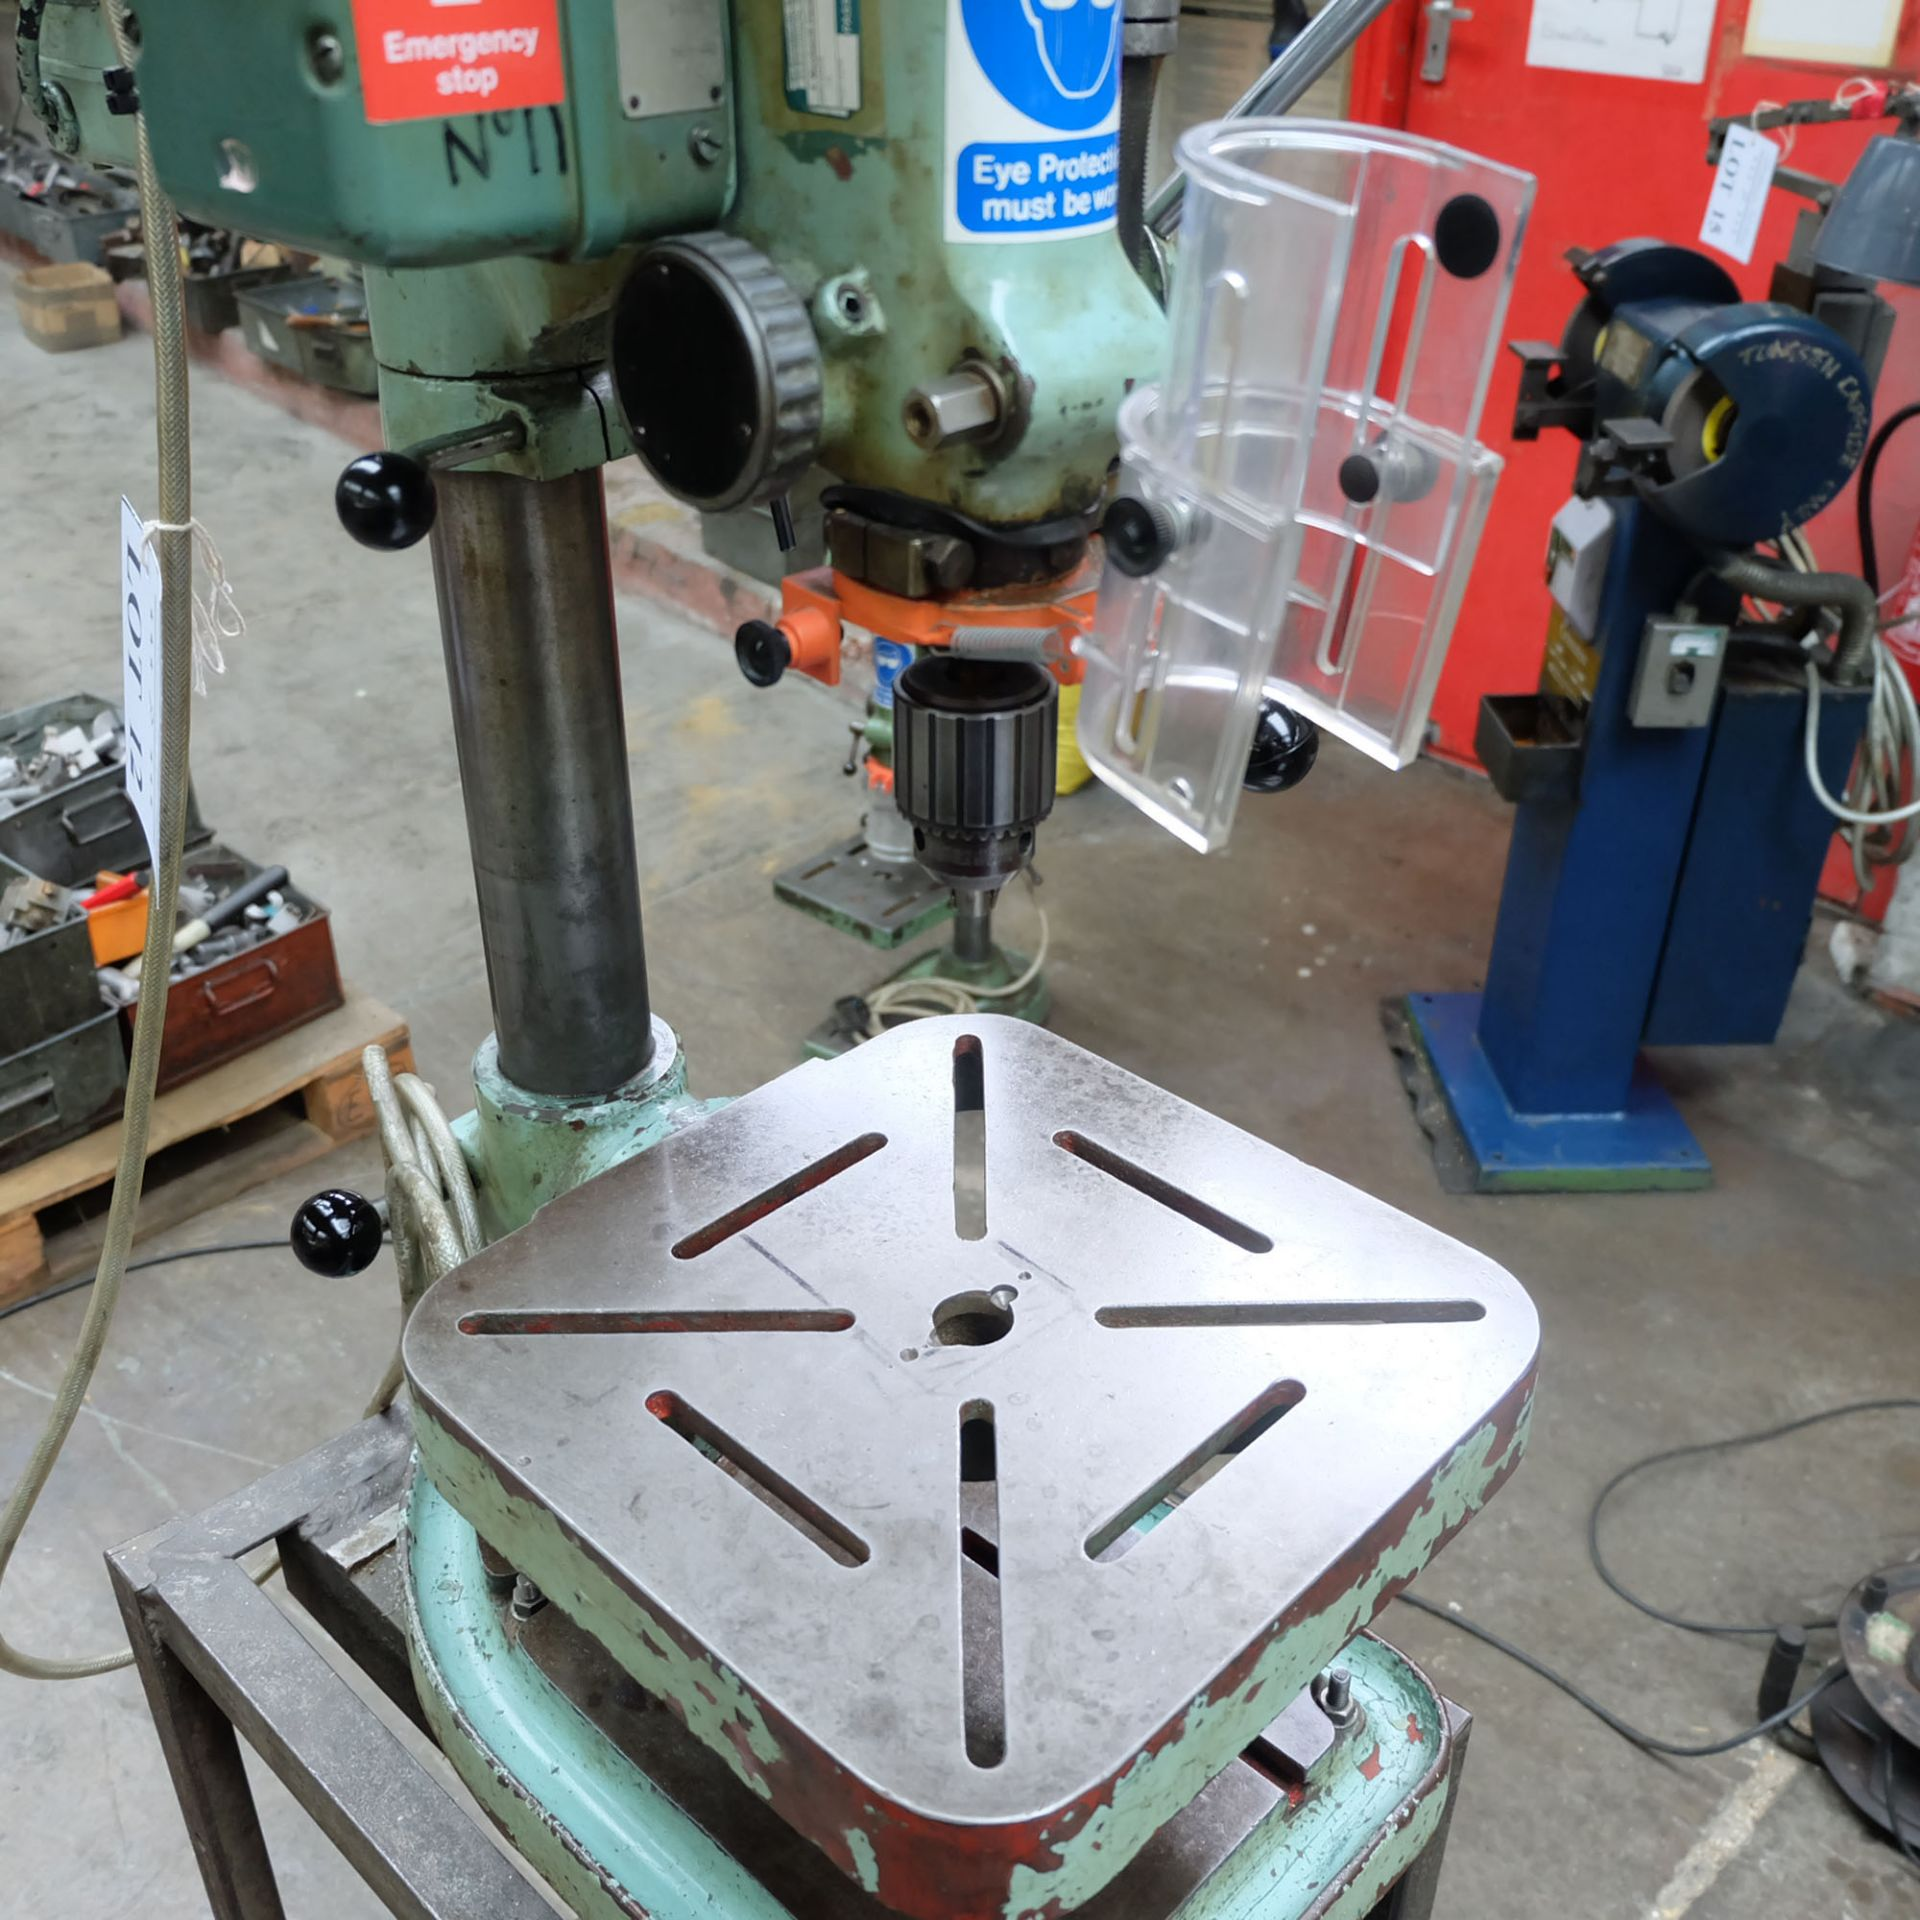 """Elliot Progress No.1 Bench Drill. 1/2"""" Drilling Capacity. Spindle Speeds: 340-2580rpm. - Image 3 of 4"""